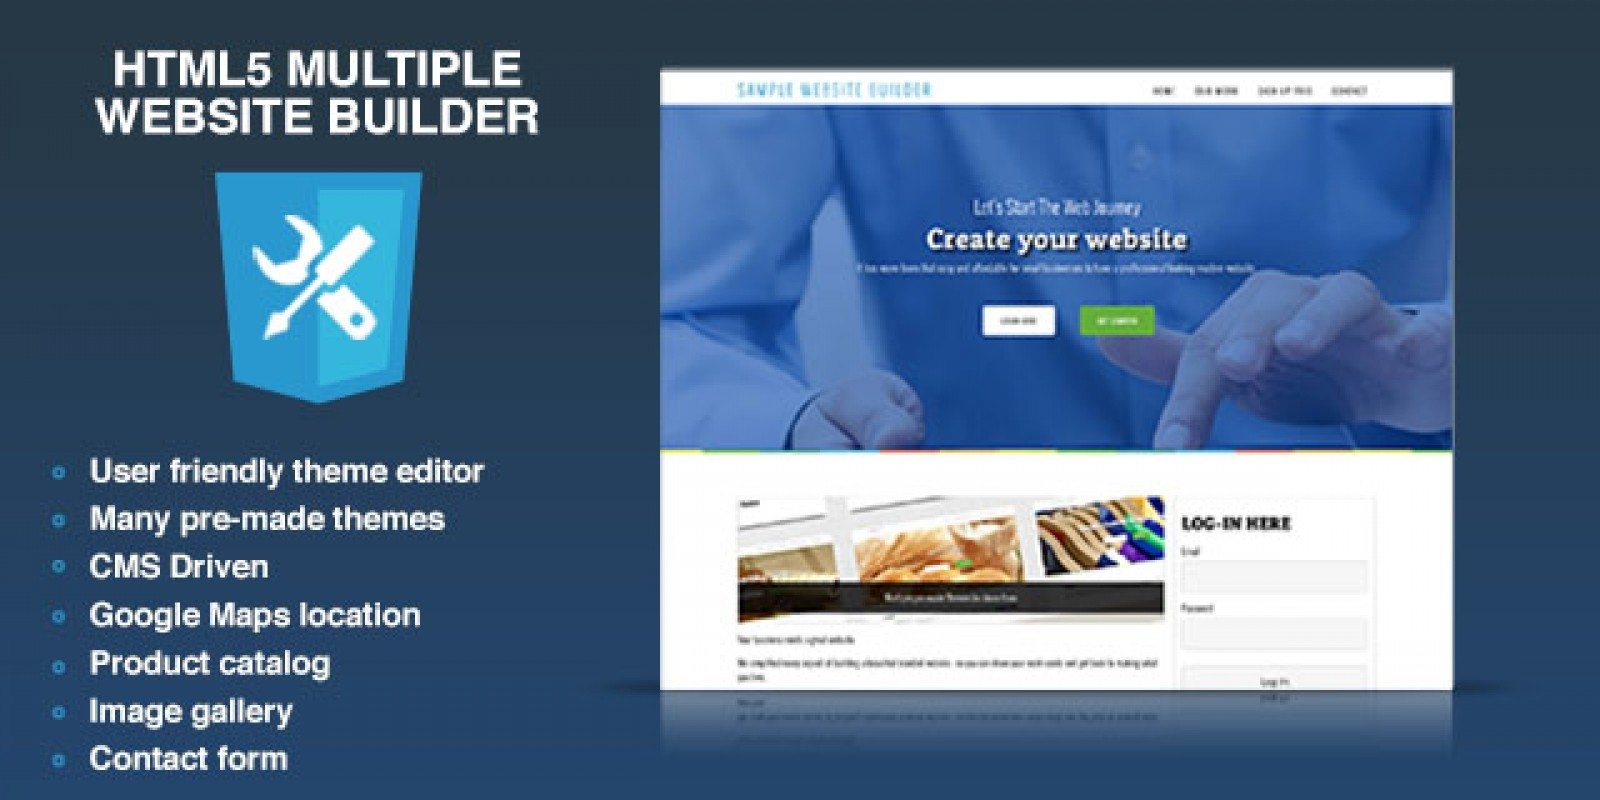 HTML5 Multiple Website Builder - PHP Script